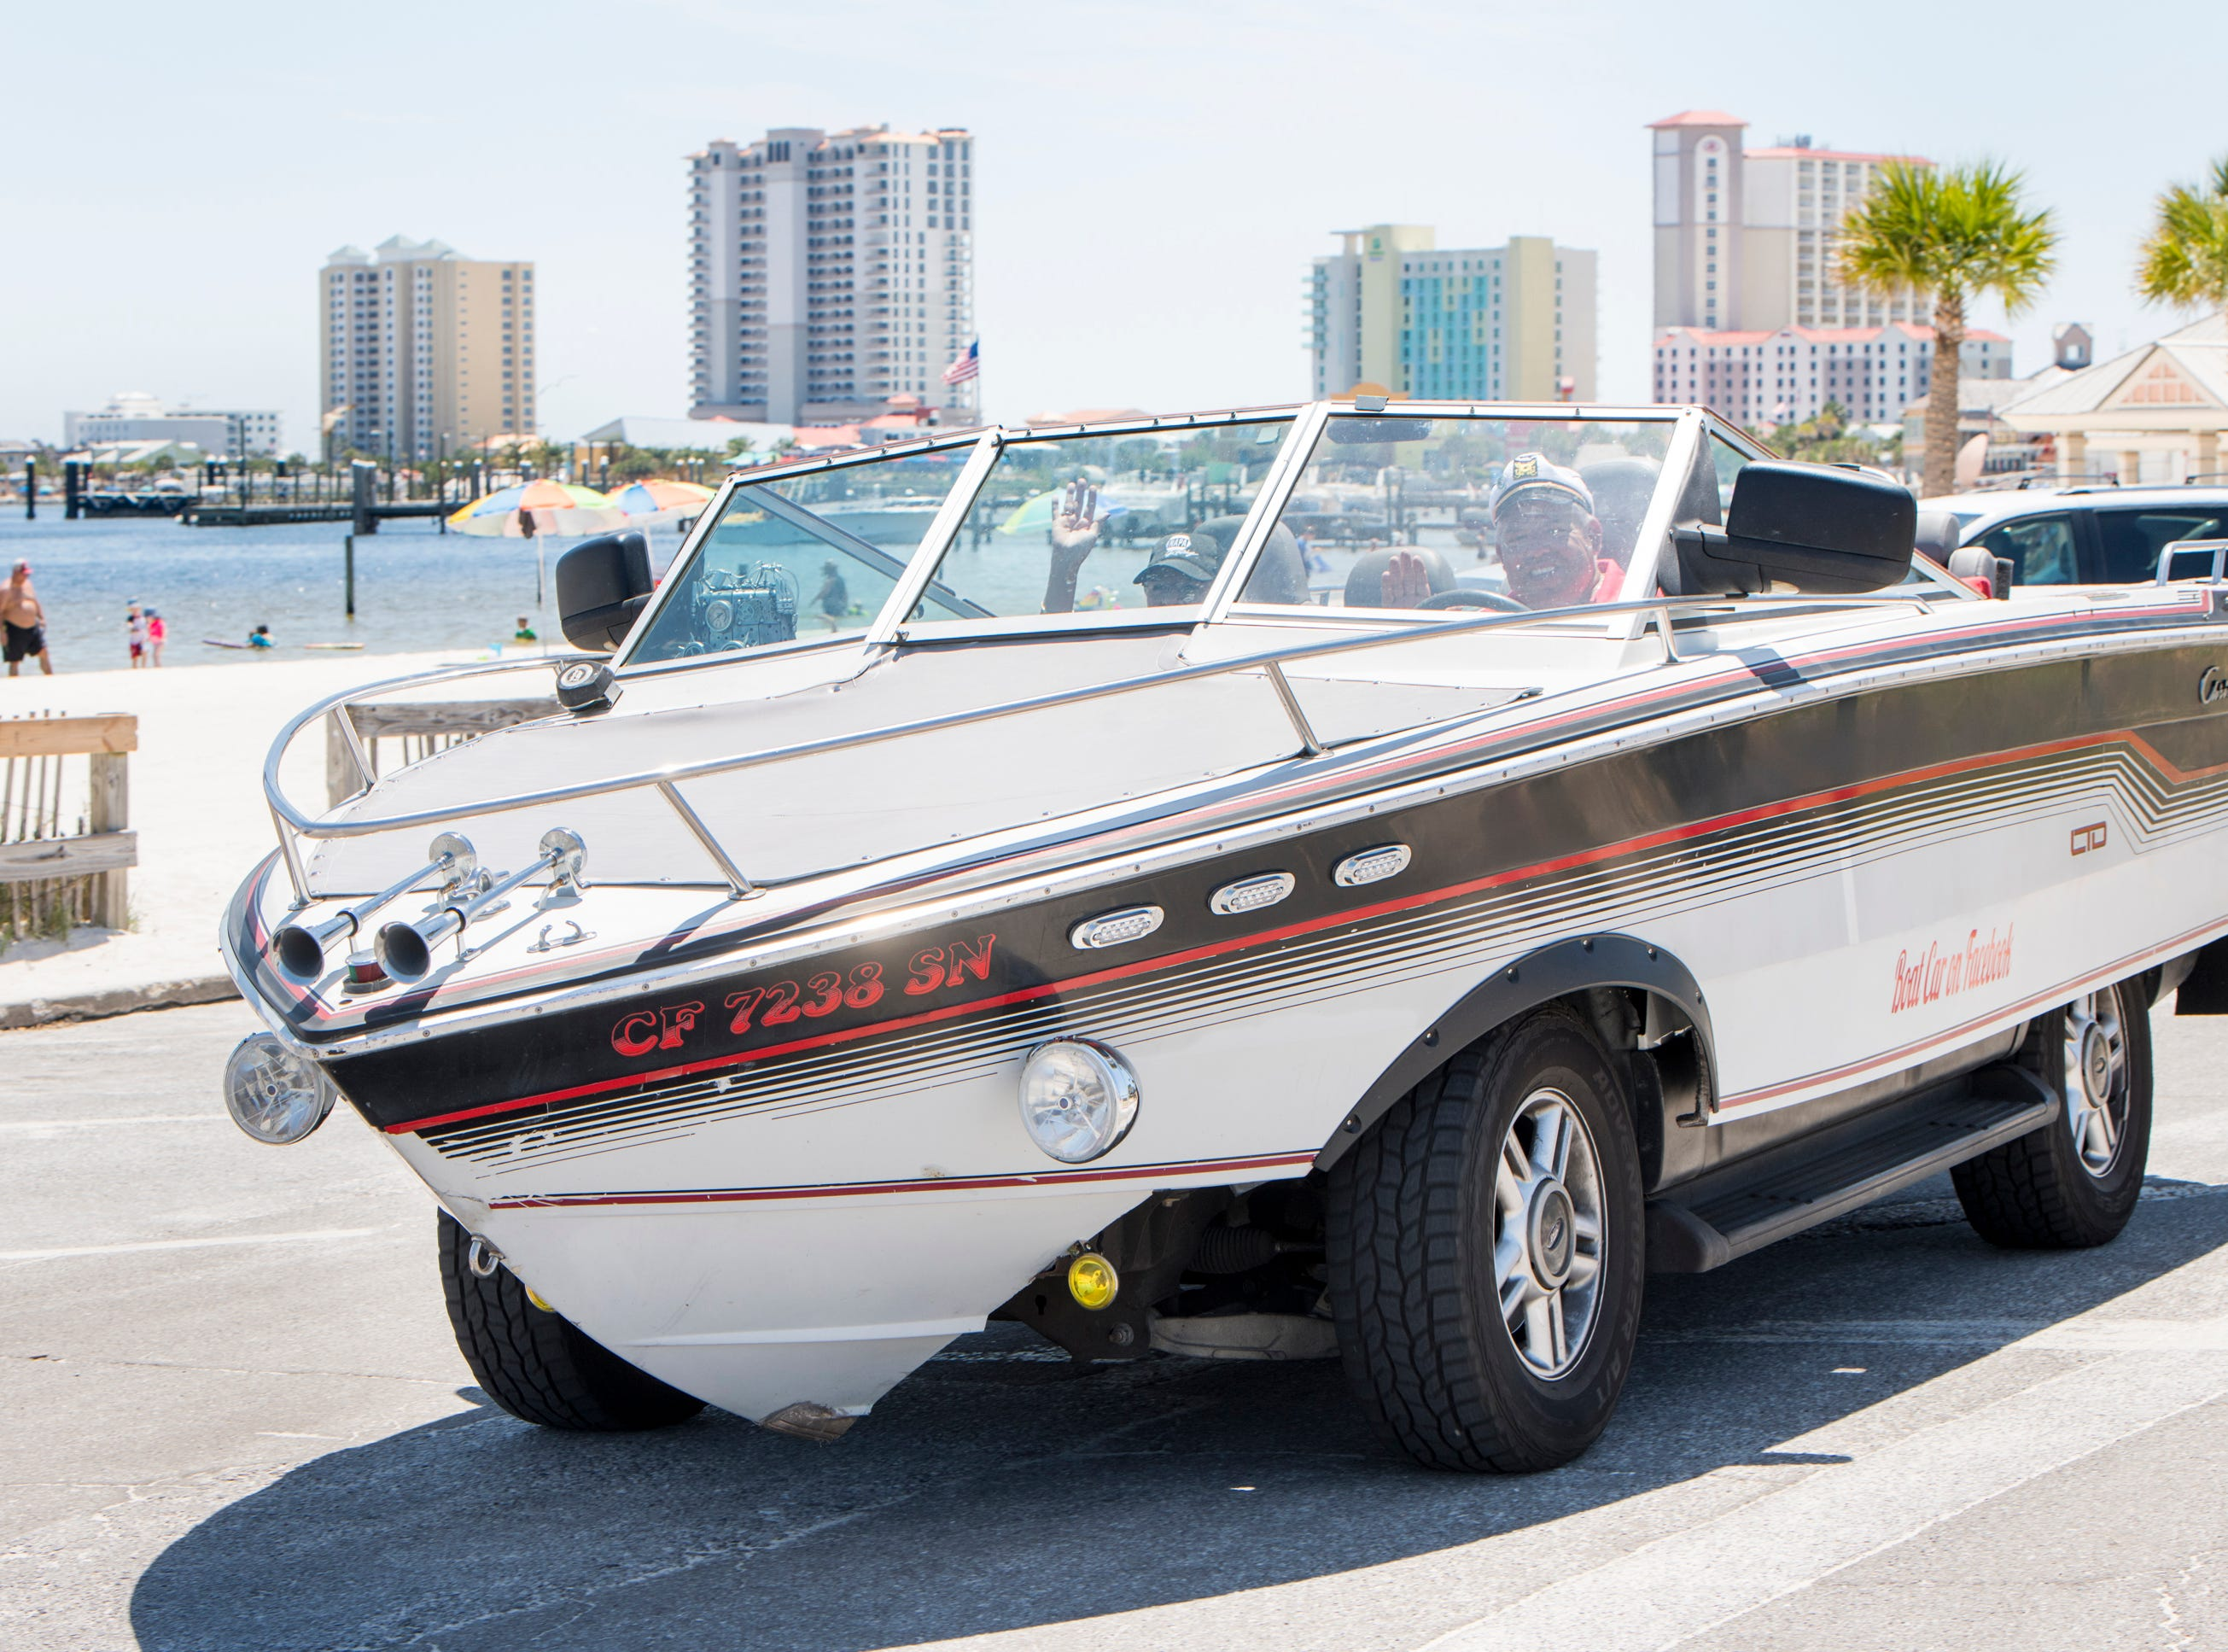 Gerry and Karen Moore drive their Boat Car along Quietwater Beach in Pensacola on Tuesday, May 7, 2019.  The vehicle is a 1986 Chris Craft 210 Scorpion boat - 2003 Ford Expedition SUV hybrid created by Gerry.